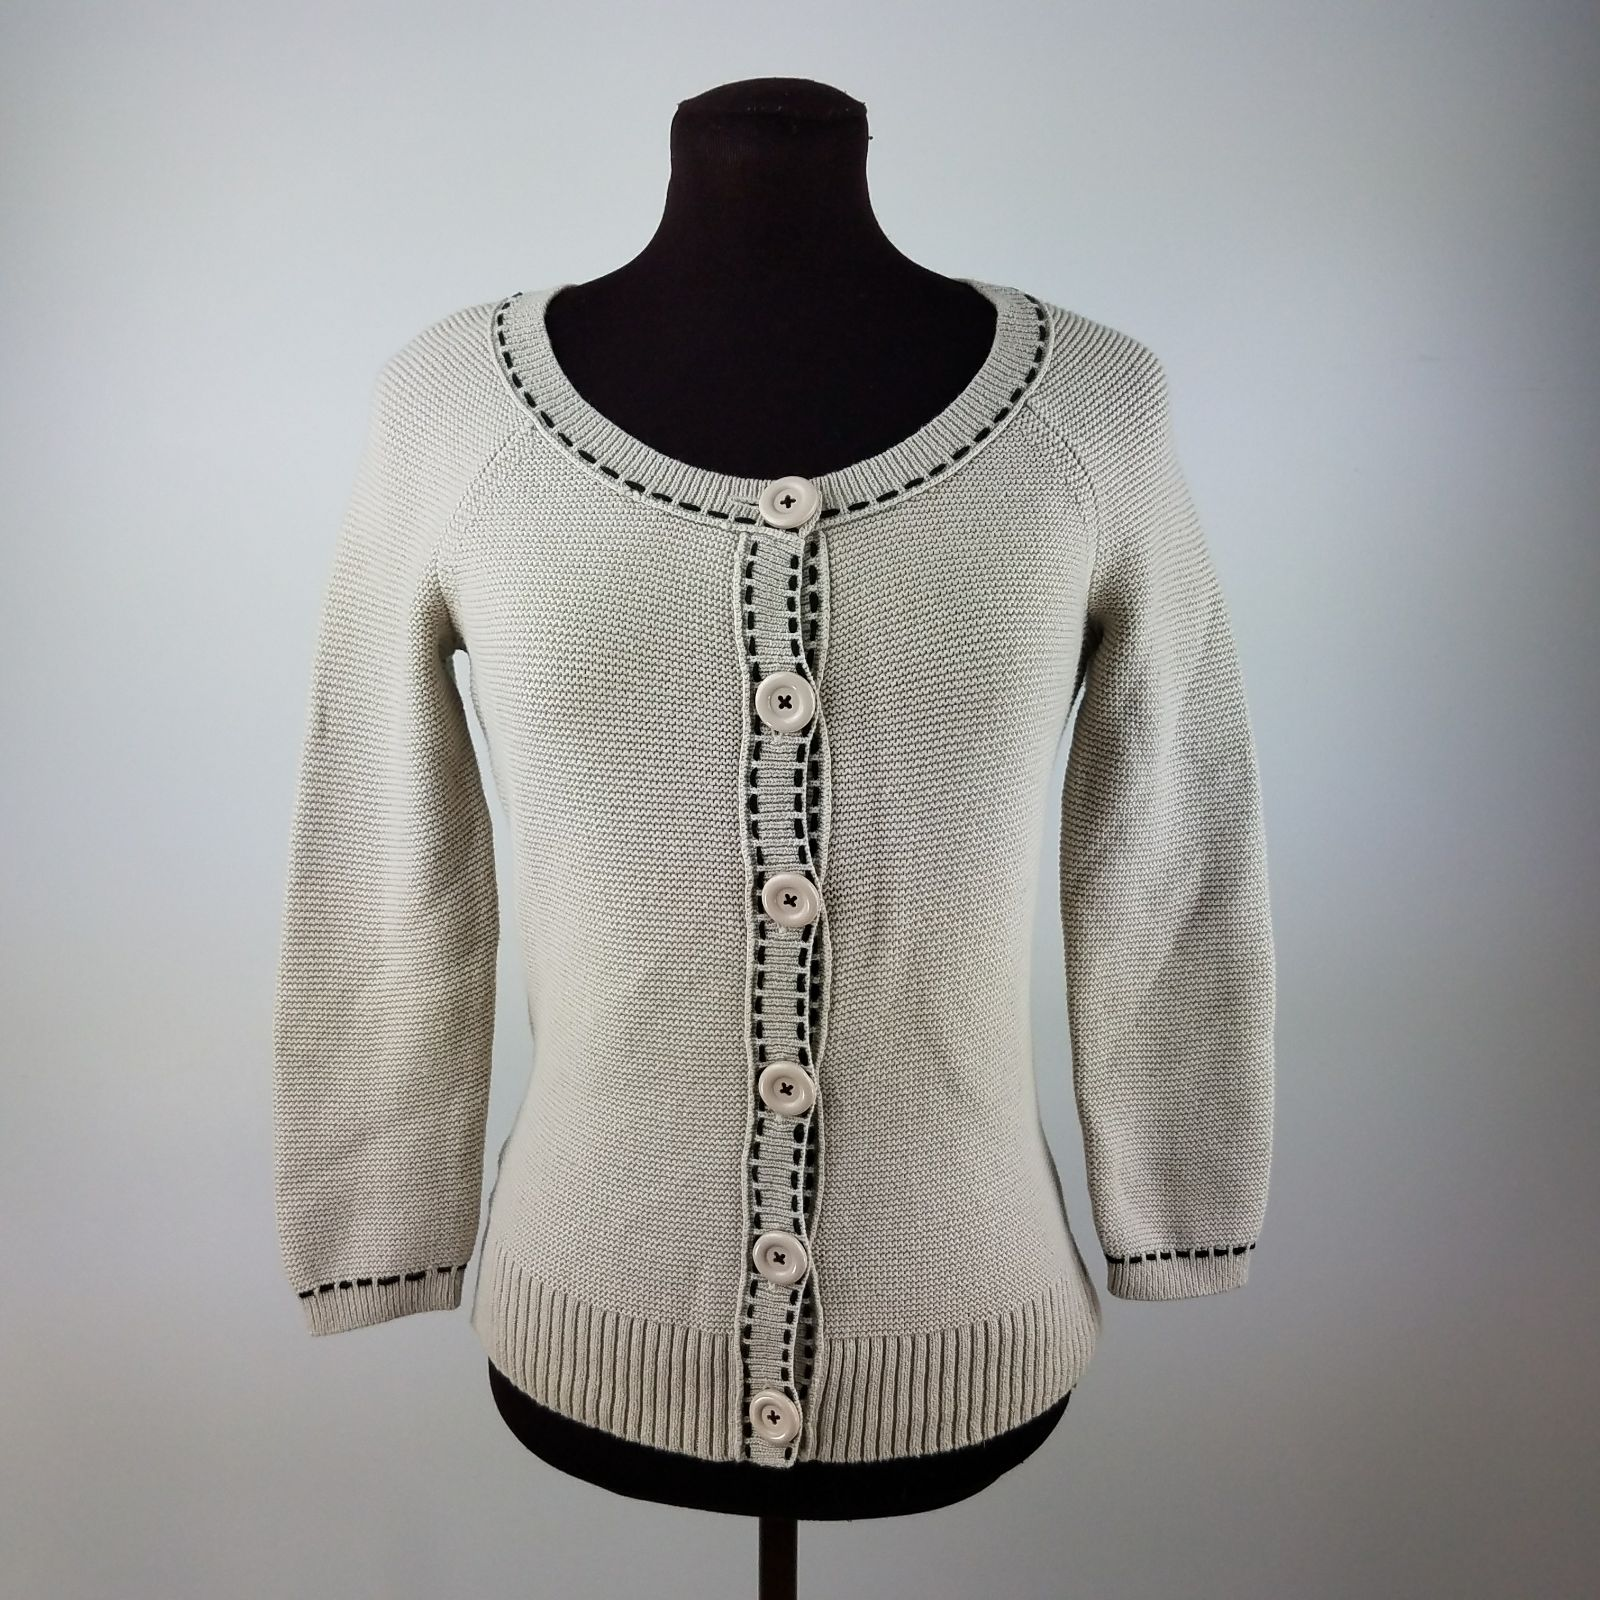 Ann Taylor Loft women's cardigan sweater - Mercari: BUY & SELL ...